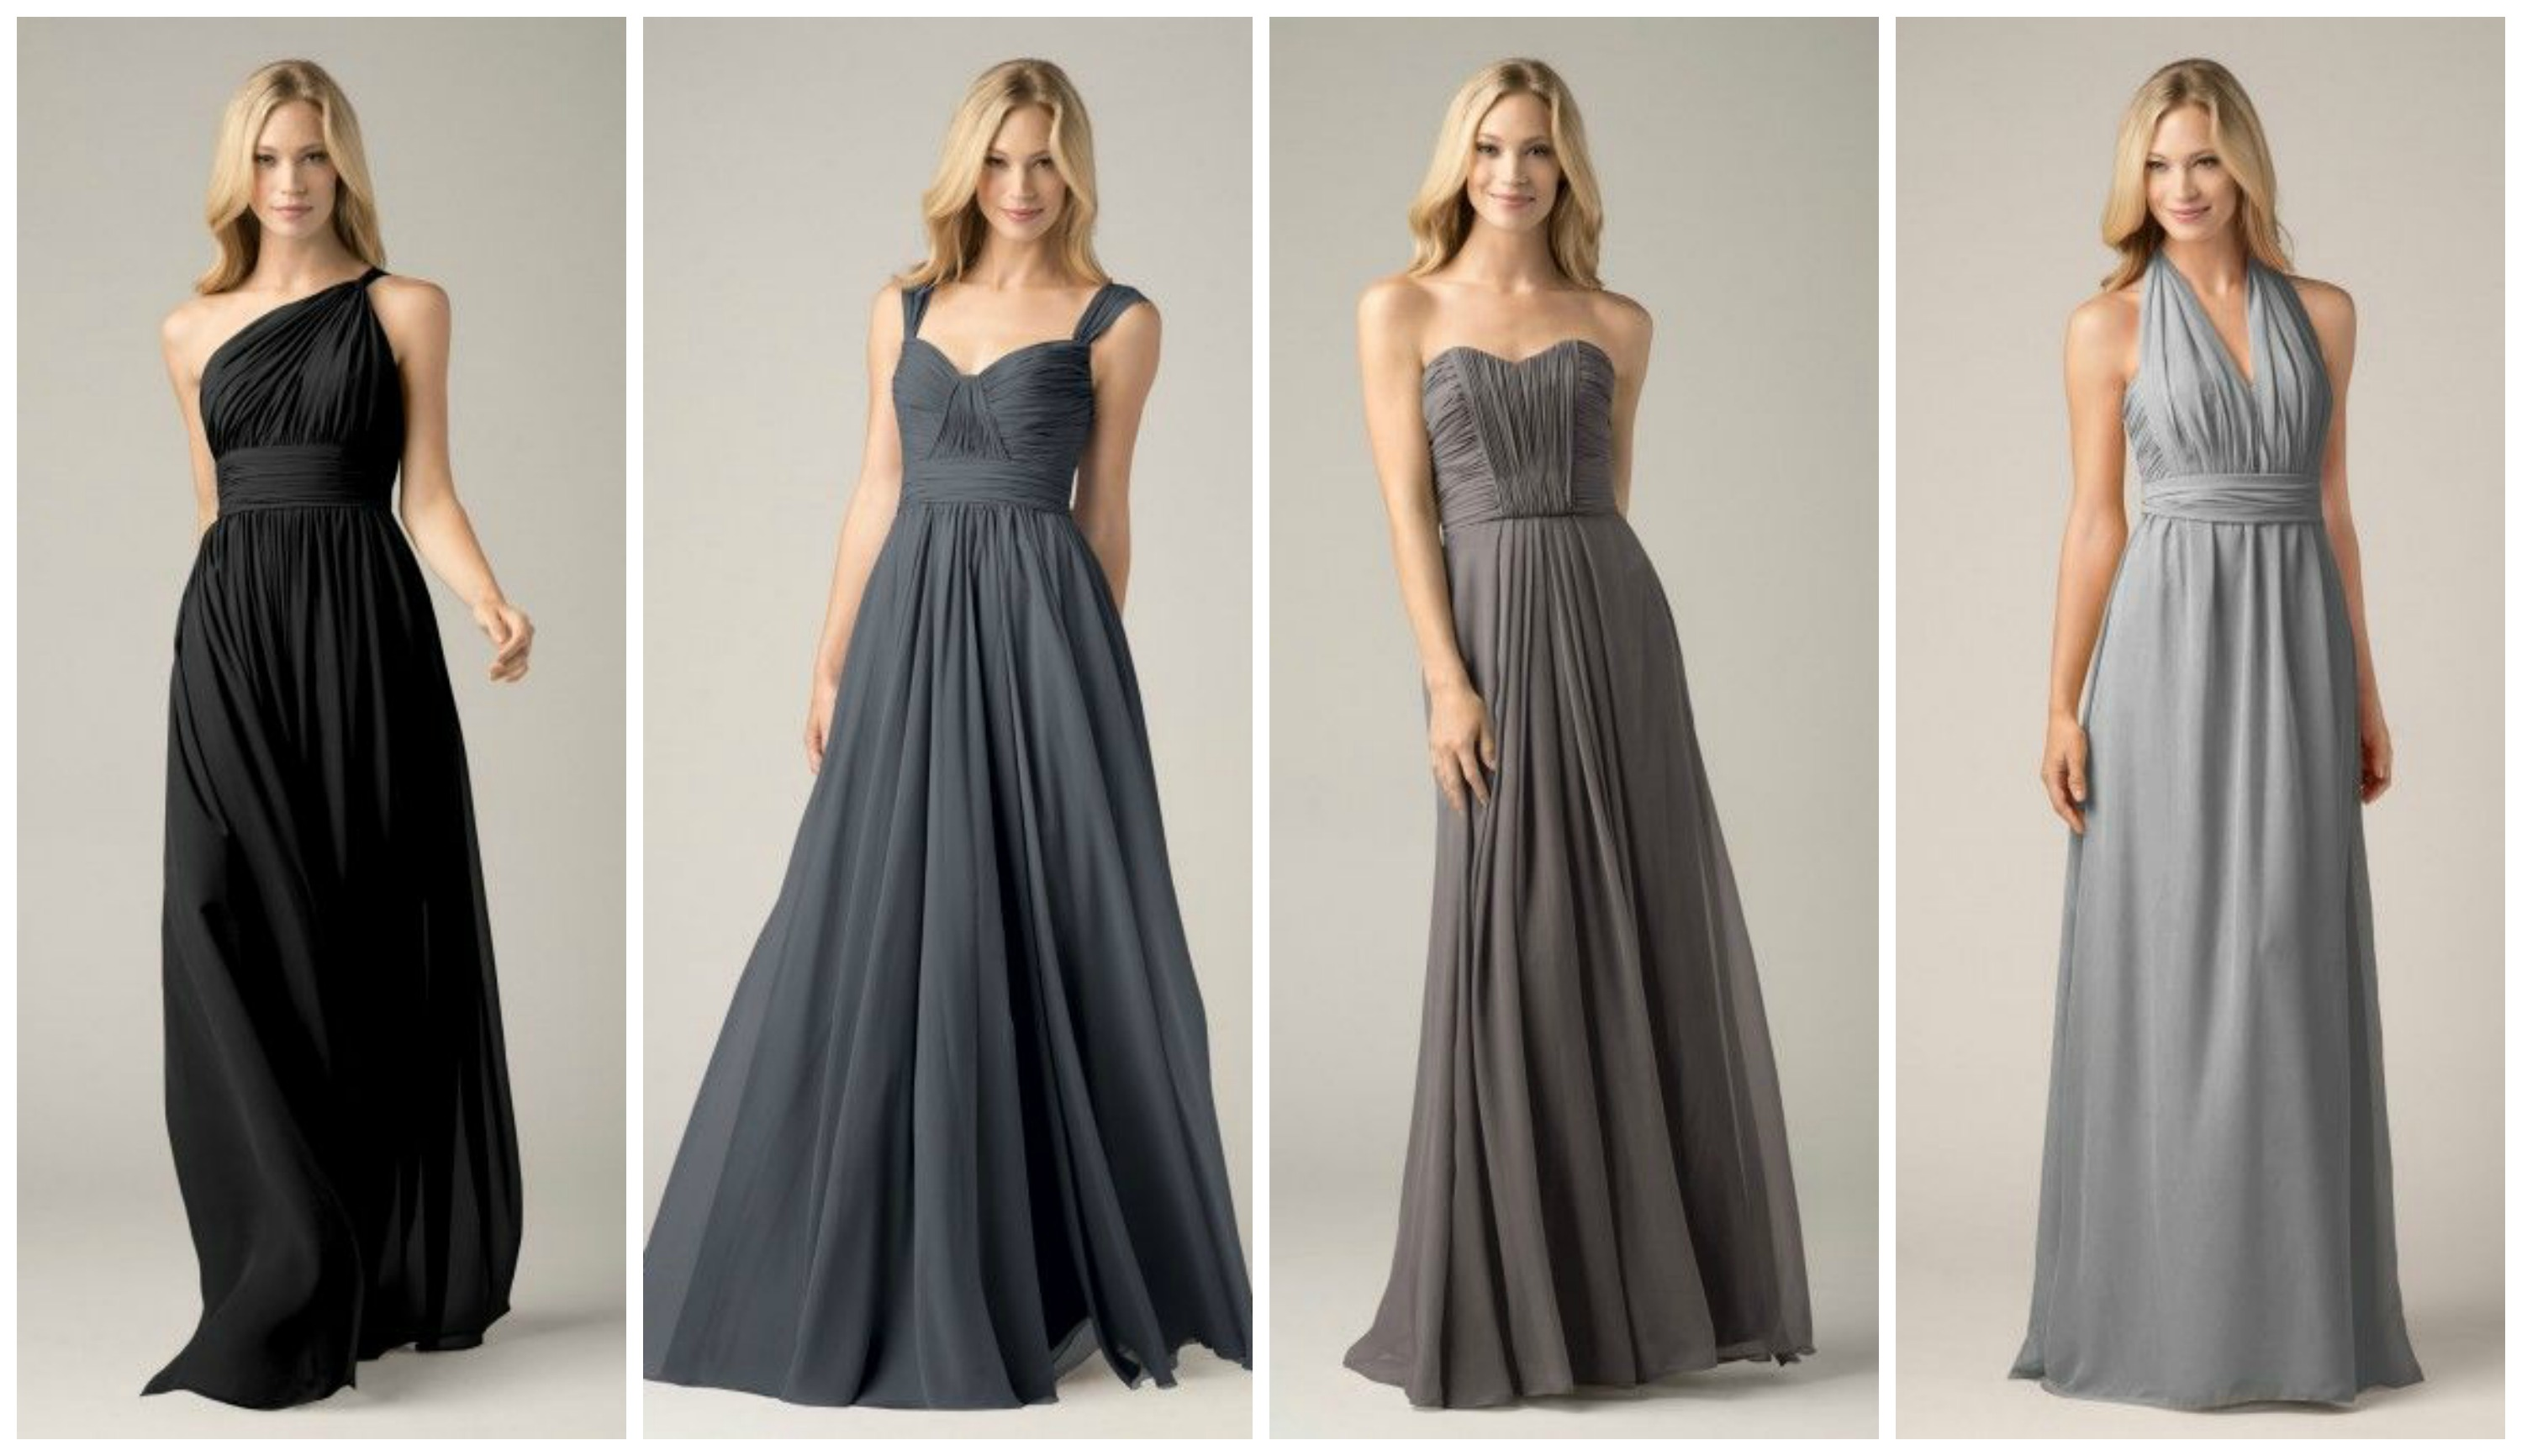 grey ombre wedding dress ombre wedding dress grey ombre wedding dress